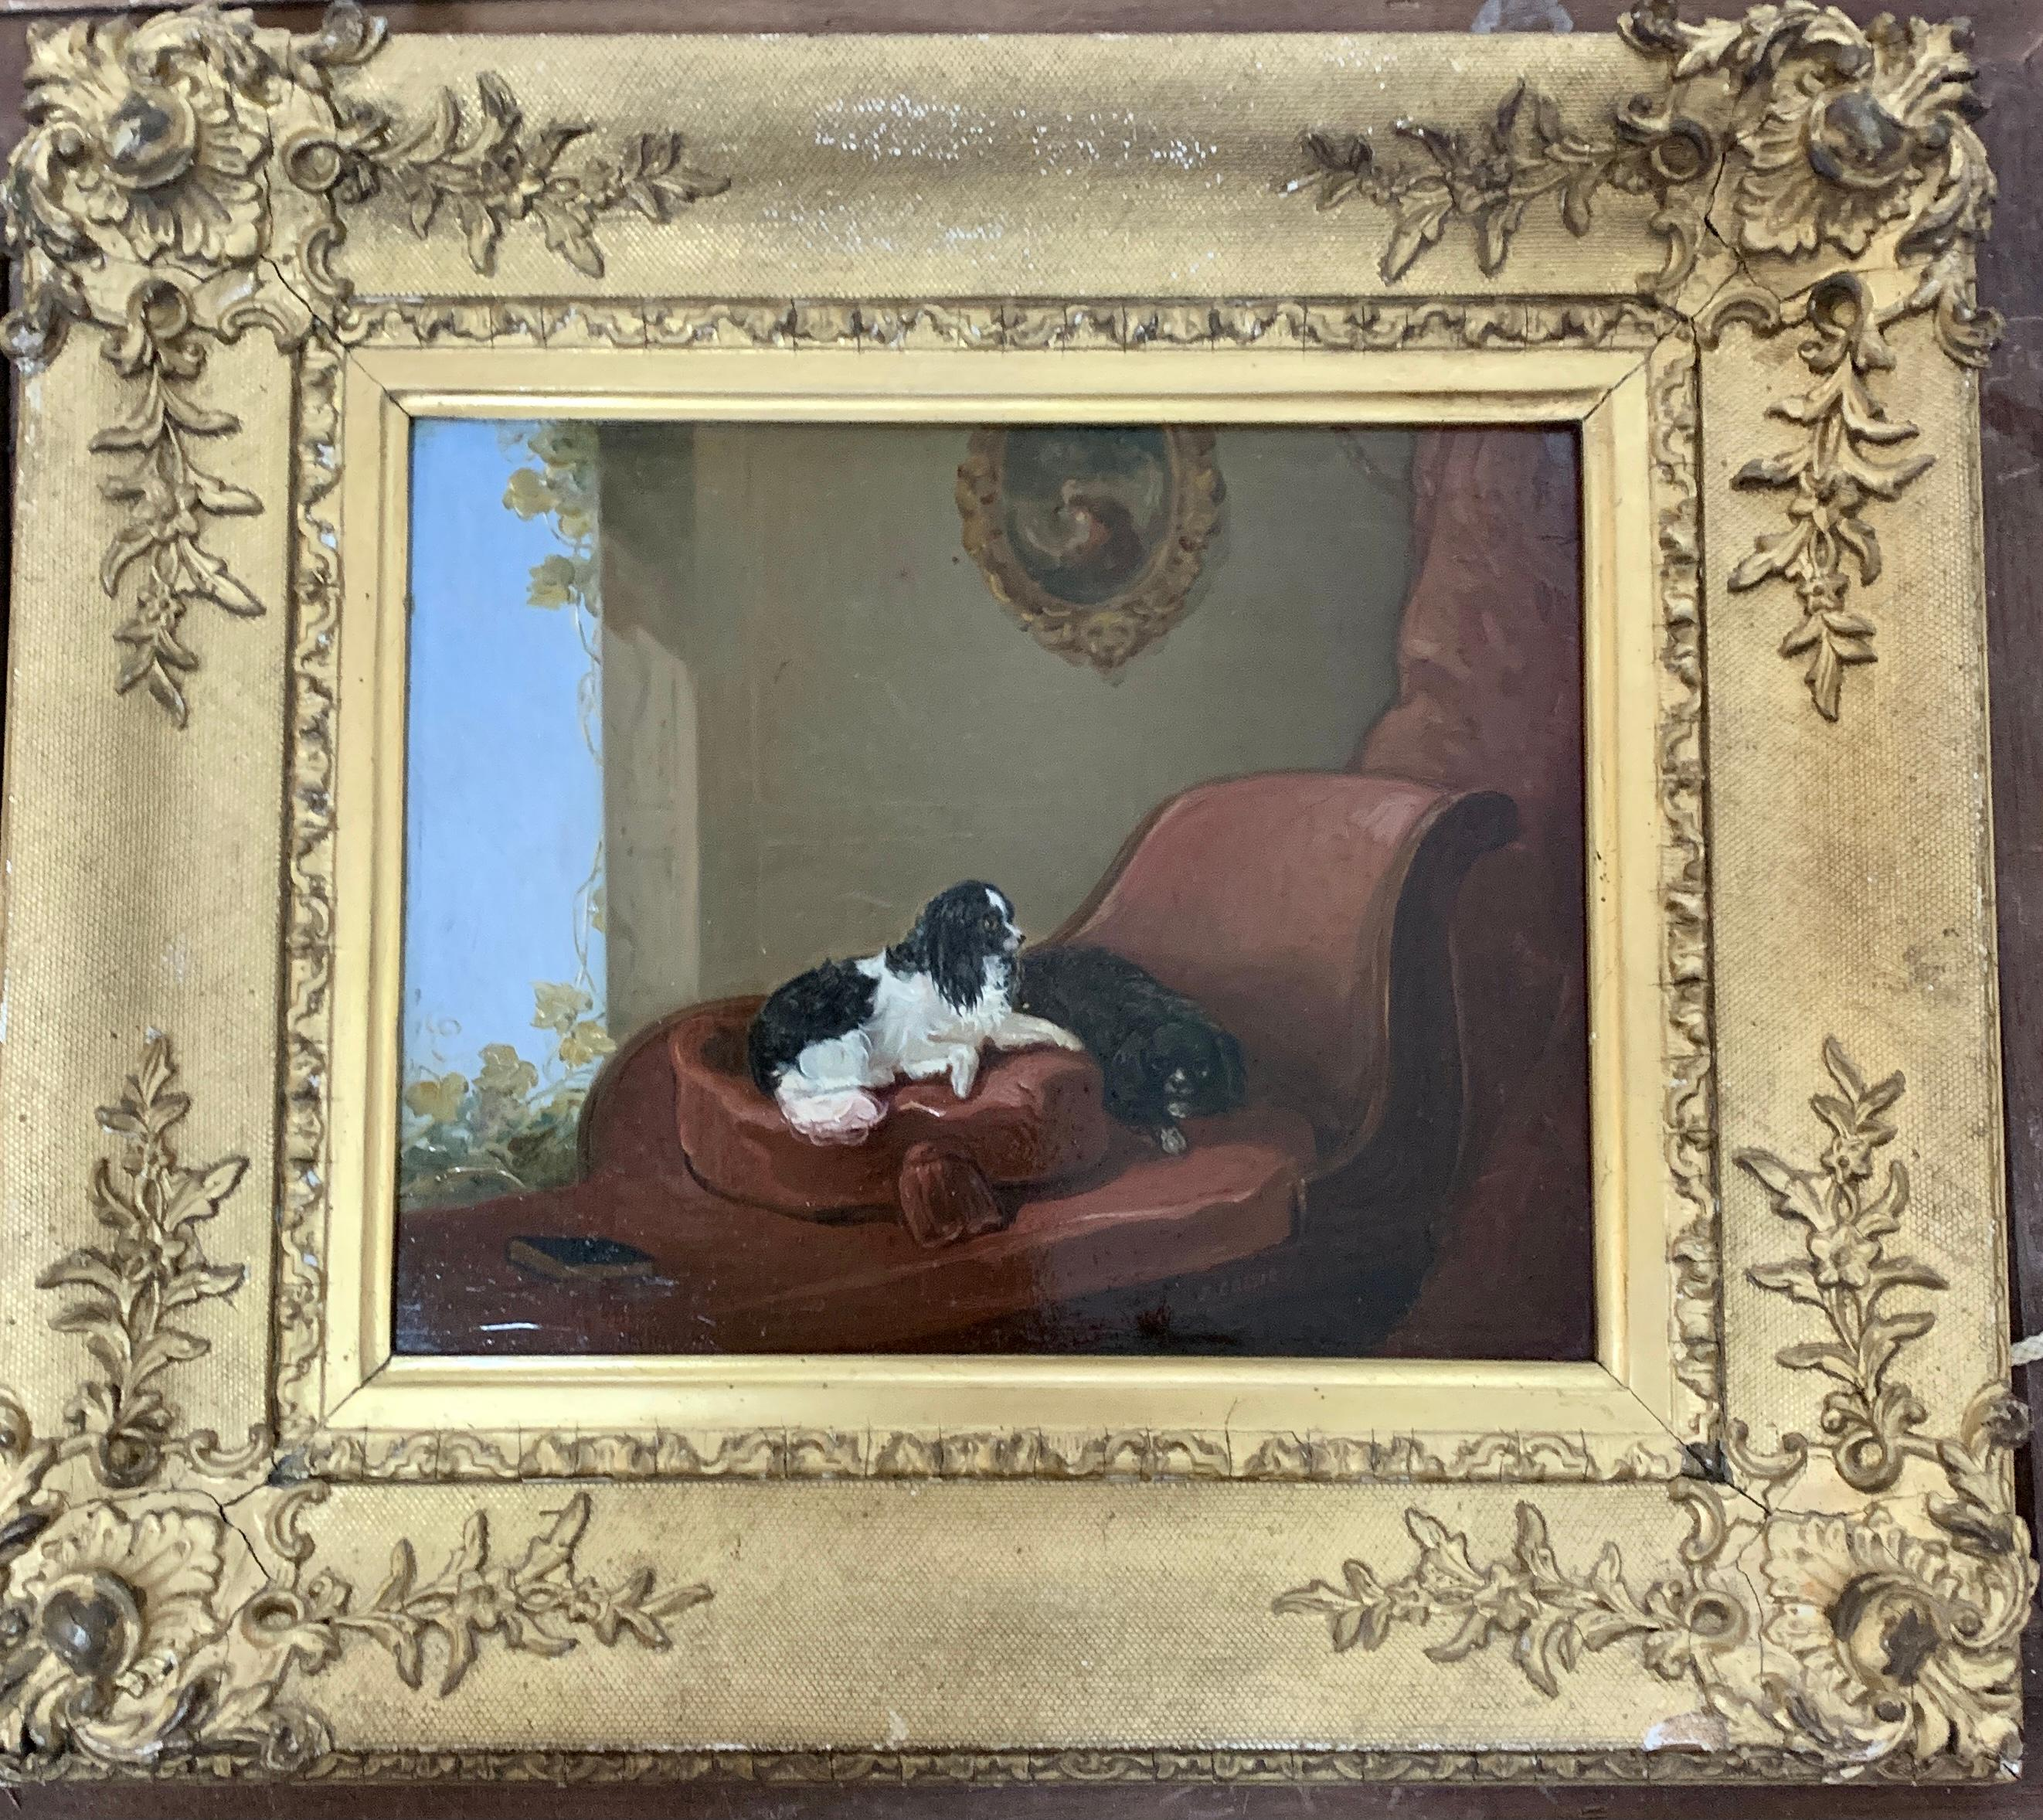 English 19th century portrait of two seated King Charles Cavalier Spaniels dogs